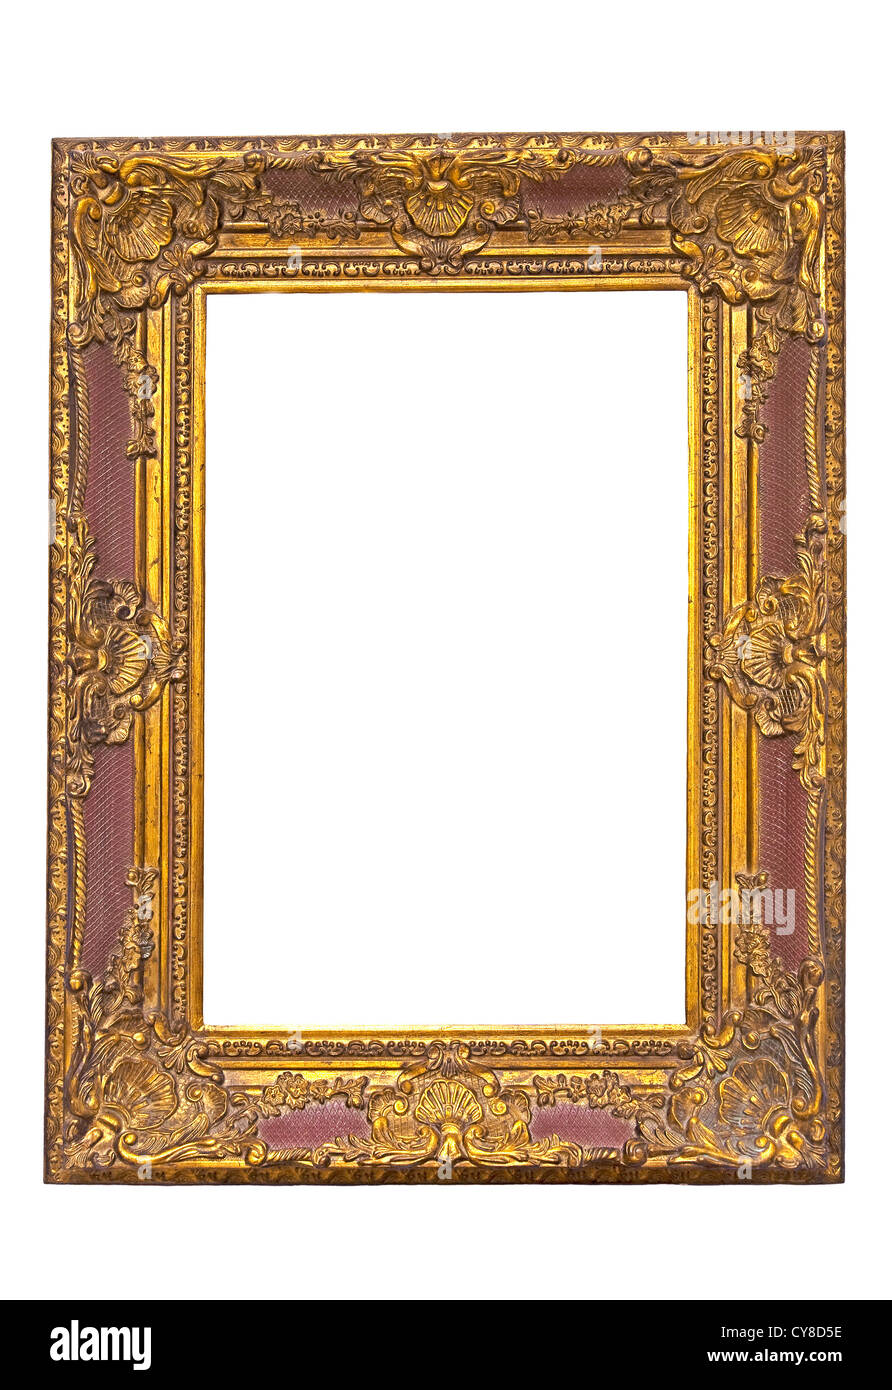 Old wooden carved and gilded frame Stock Photo: 51202410 - Alamy